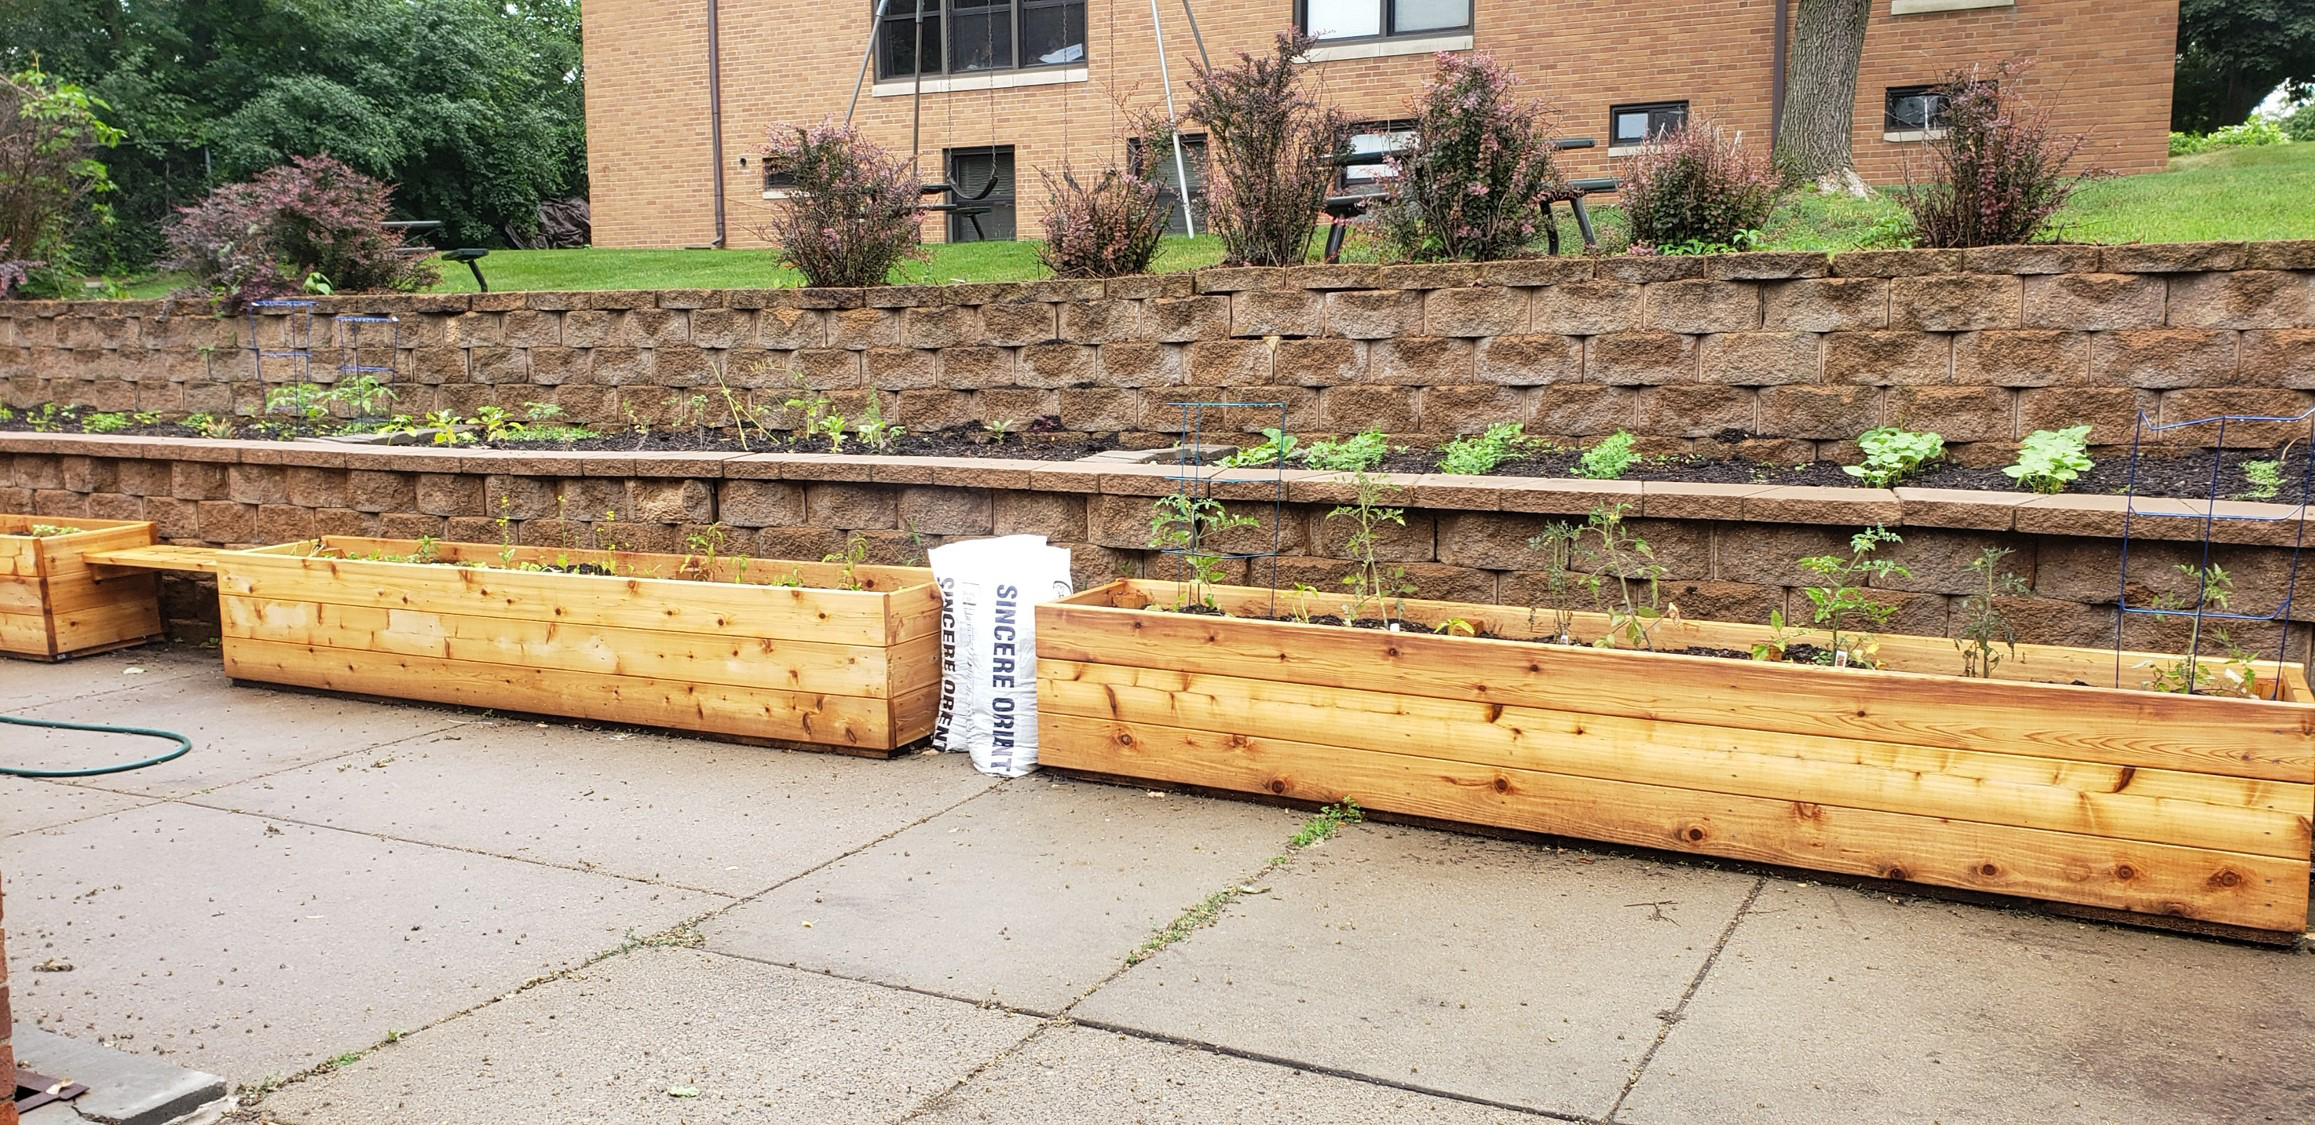 Garden boxes created by volunteers outside Wilder Center for Social Healing